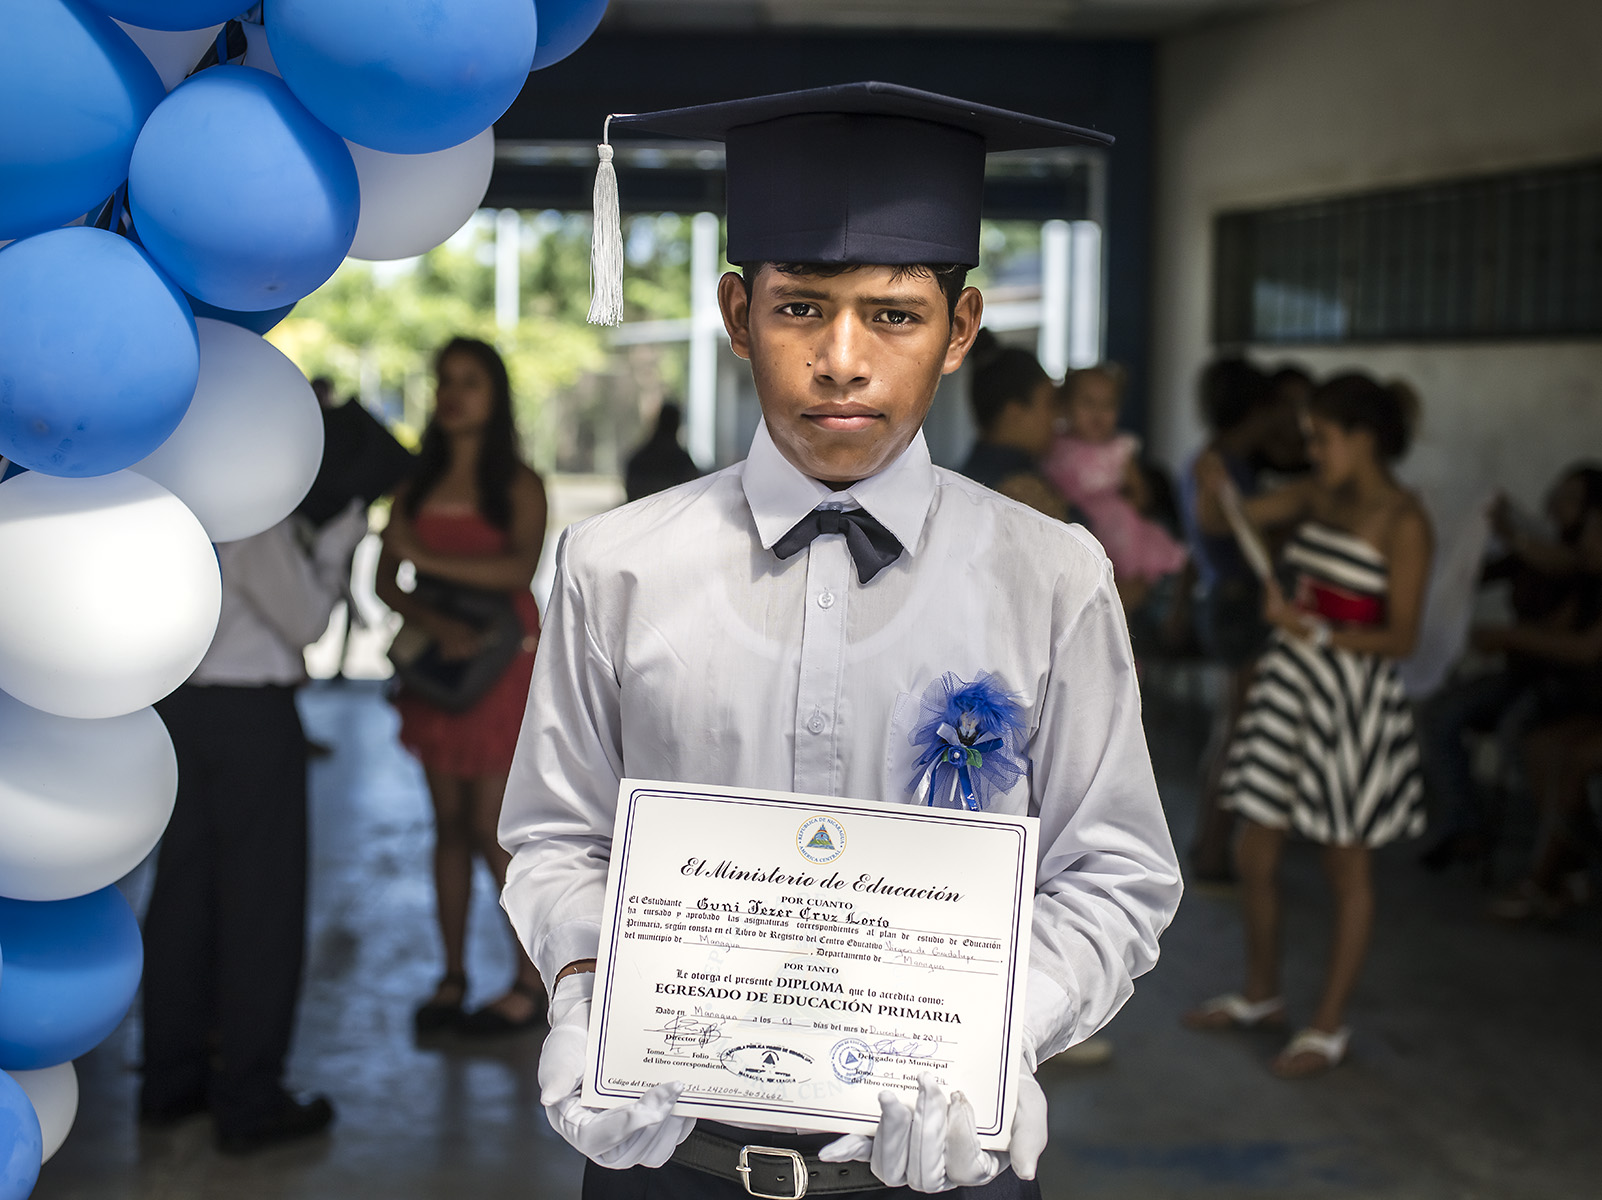 Congratulations Guni. Now you are ready for high school!